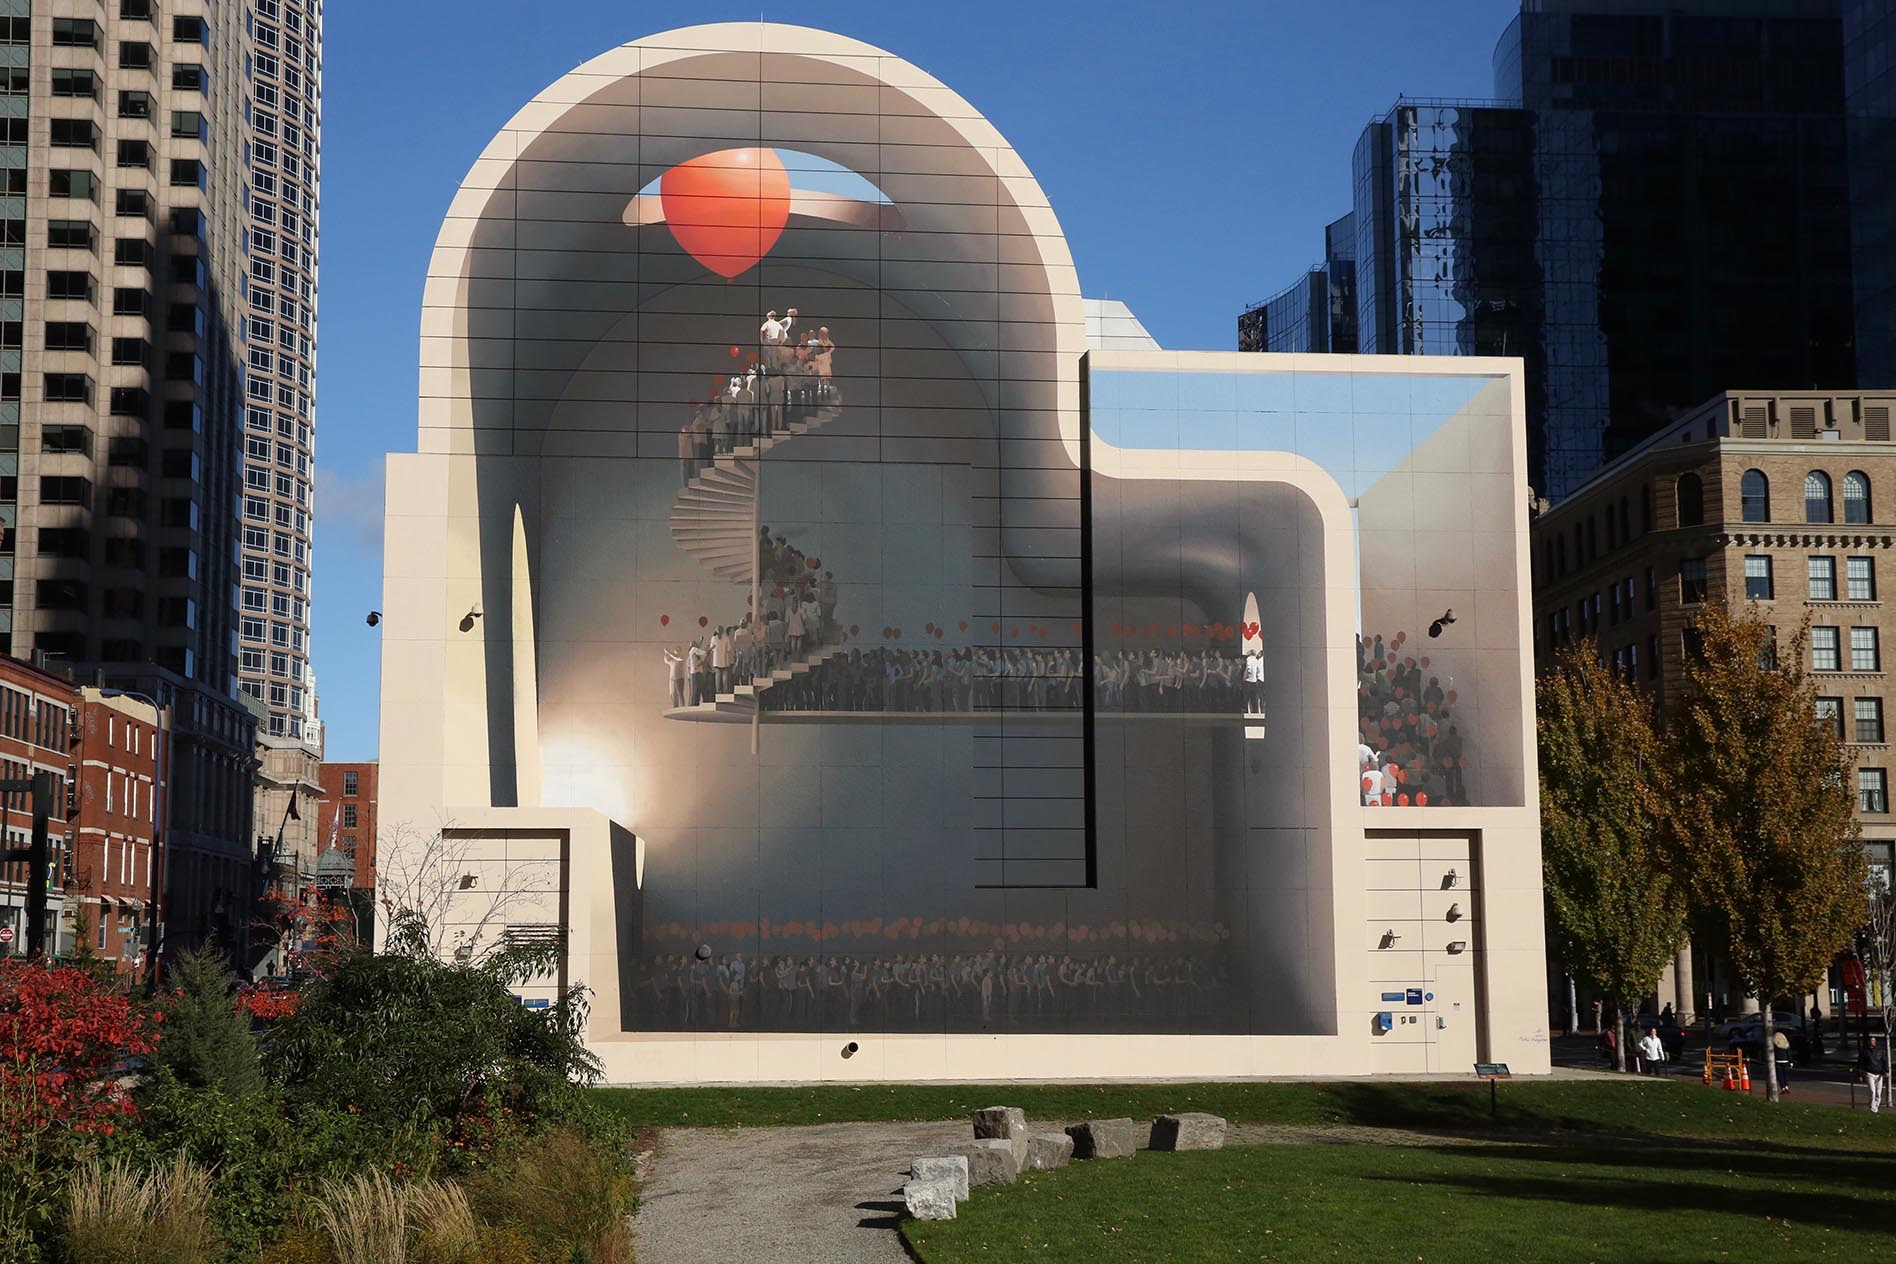 Spaces of hope by mehdi ghadyanloo at rose kennedy greenway